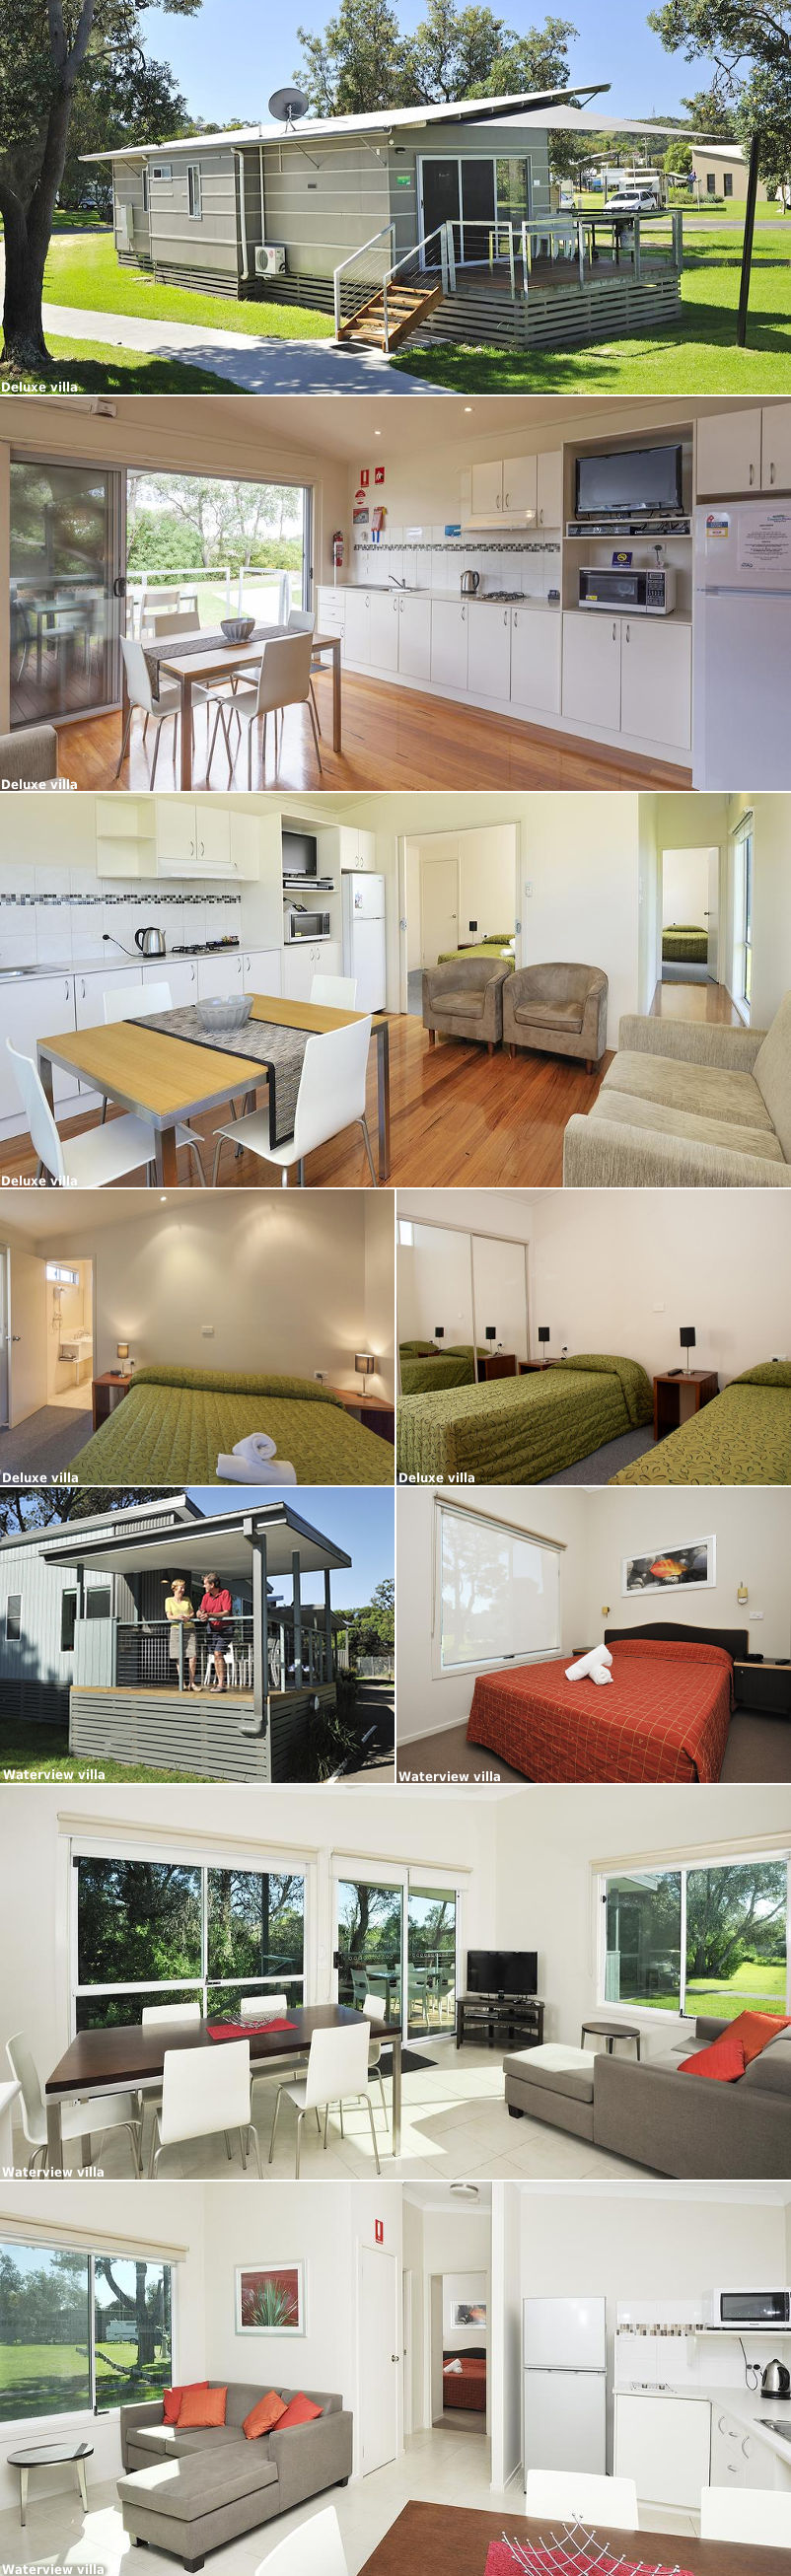 NRMA Eastern Beach Holiday Park - Villas